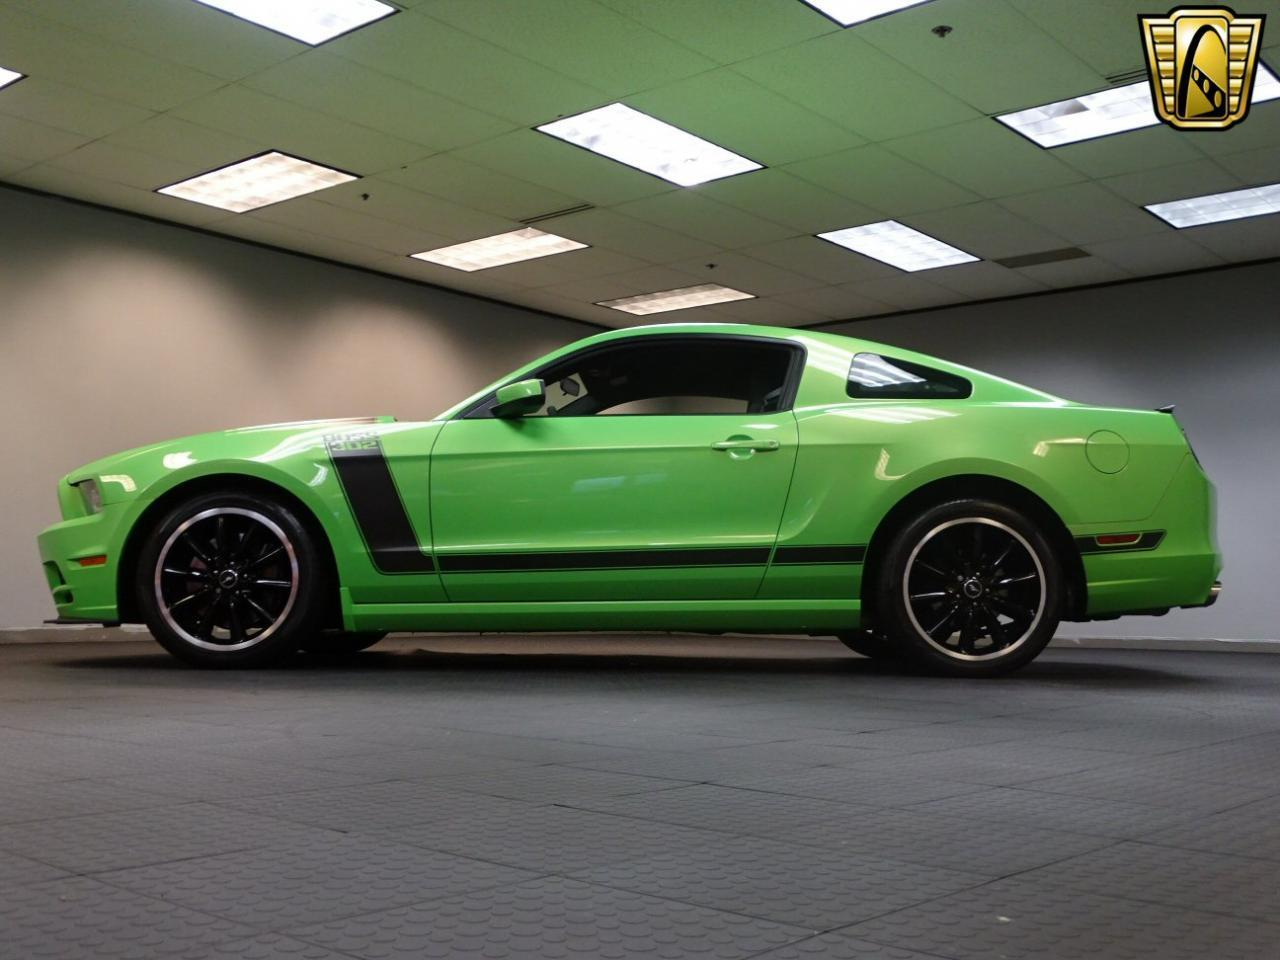 Large Picture of '13 Mustang - $40,995.00 Offered by Gateway Classic Cars - Detroit - MGI5